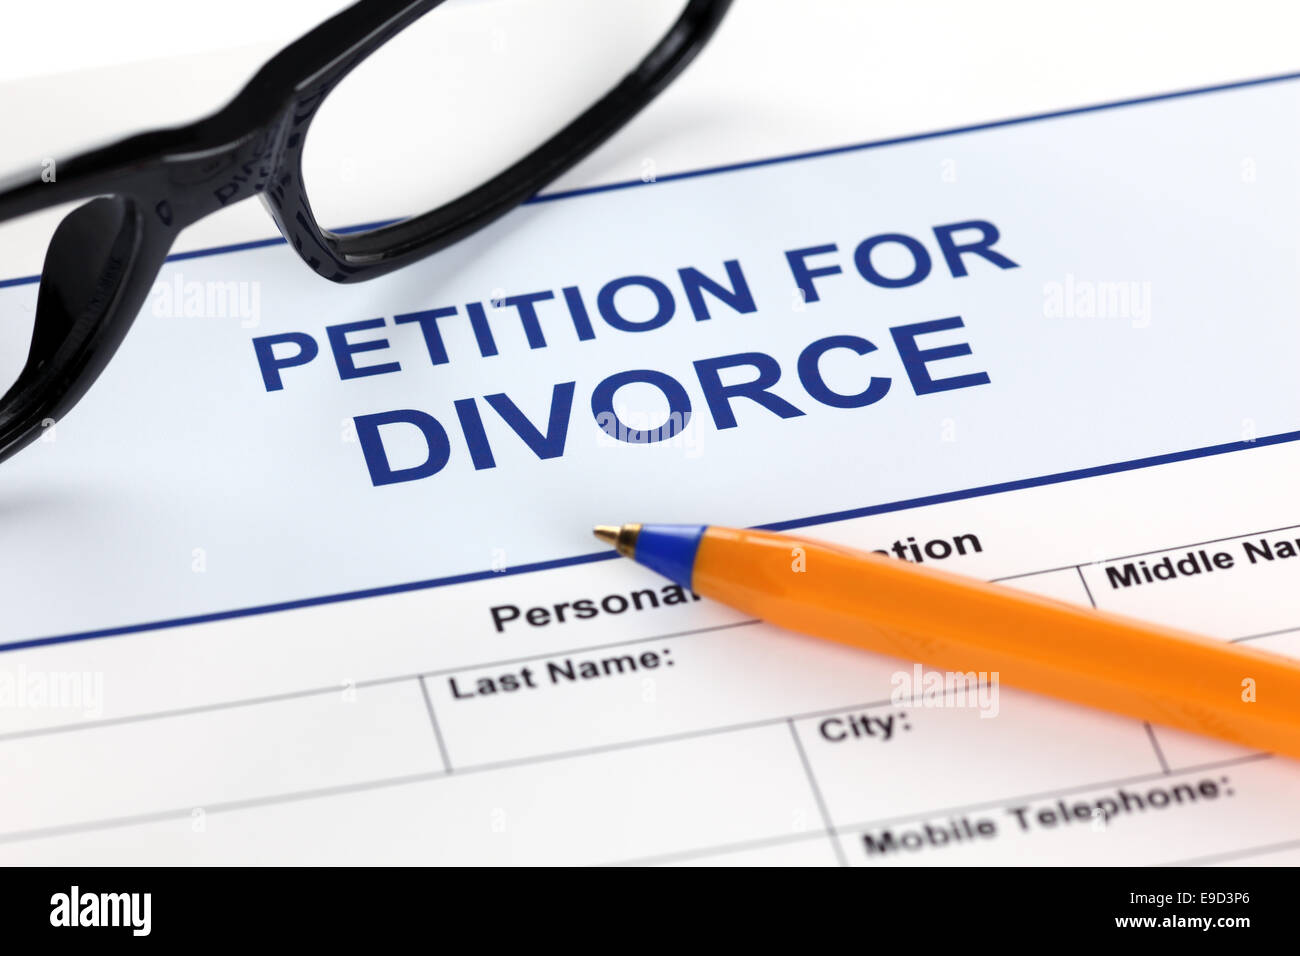 Petition for Divorce with glasses and ballpoint pen. - Stock Image